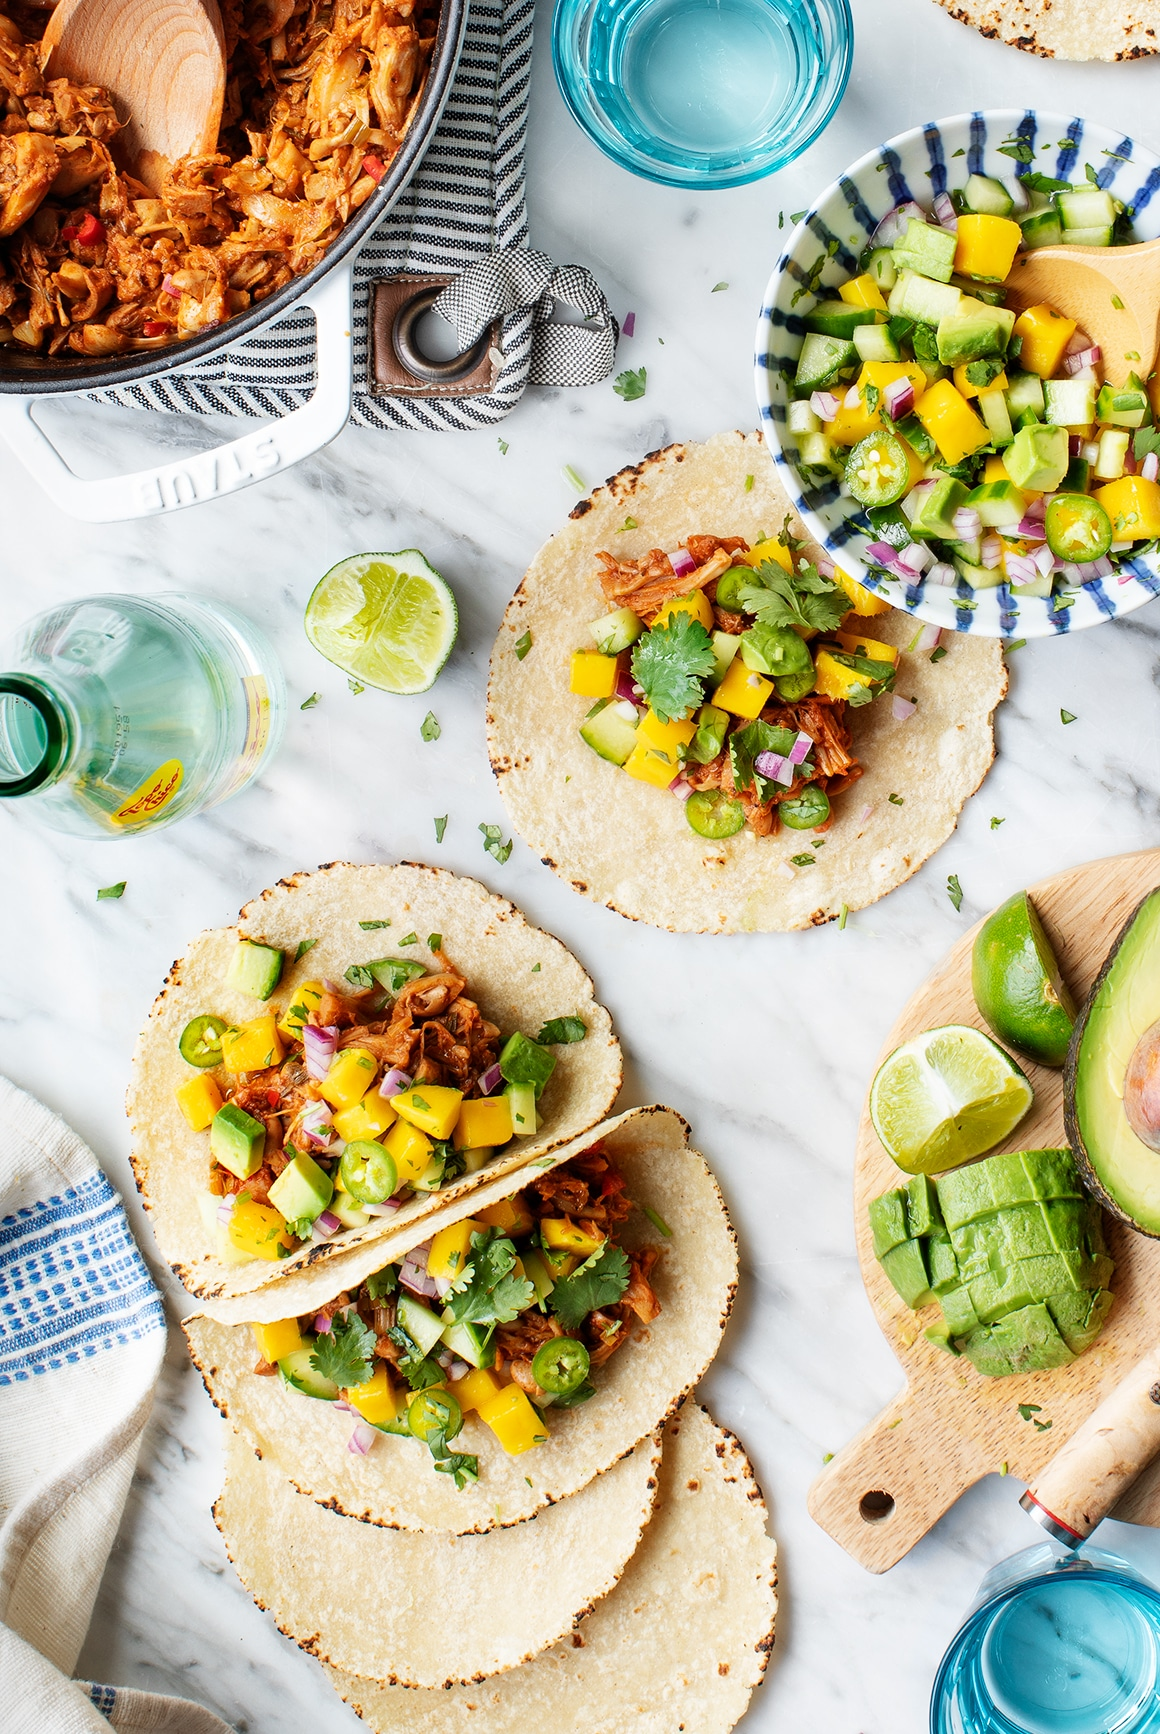 43 Easy Vegan Recipes For Rookies That Are Wholesome & Scrumptious! 30